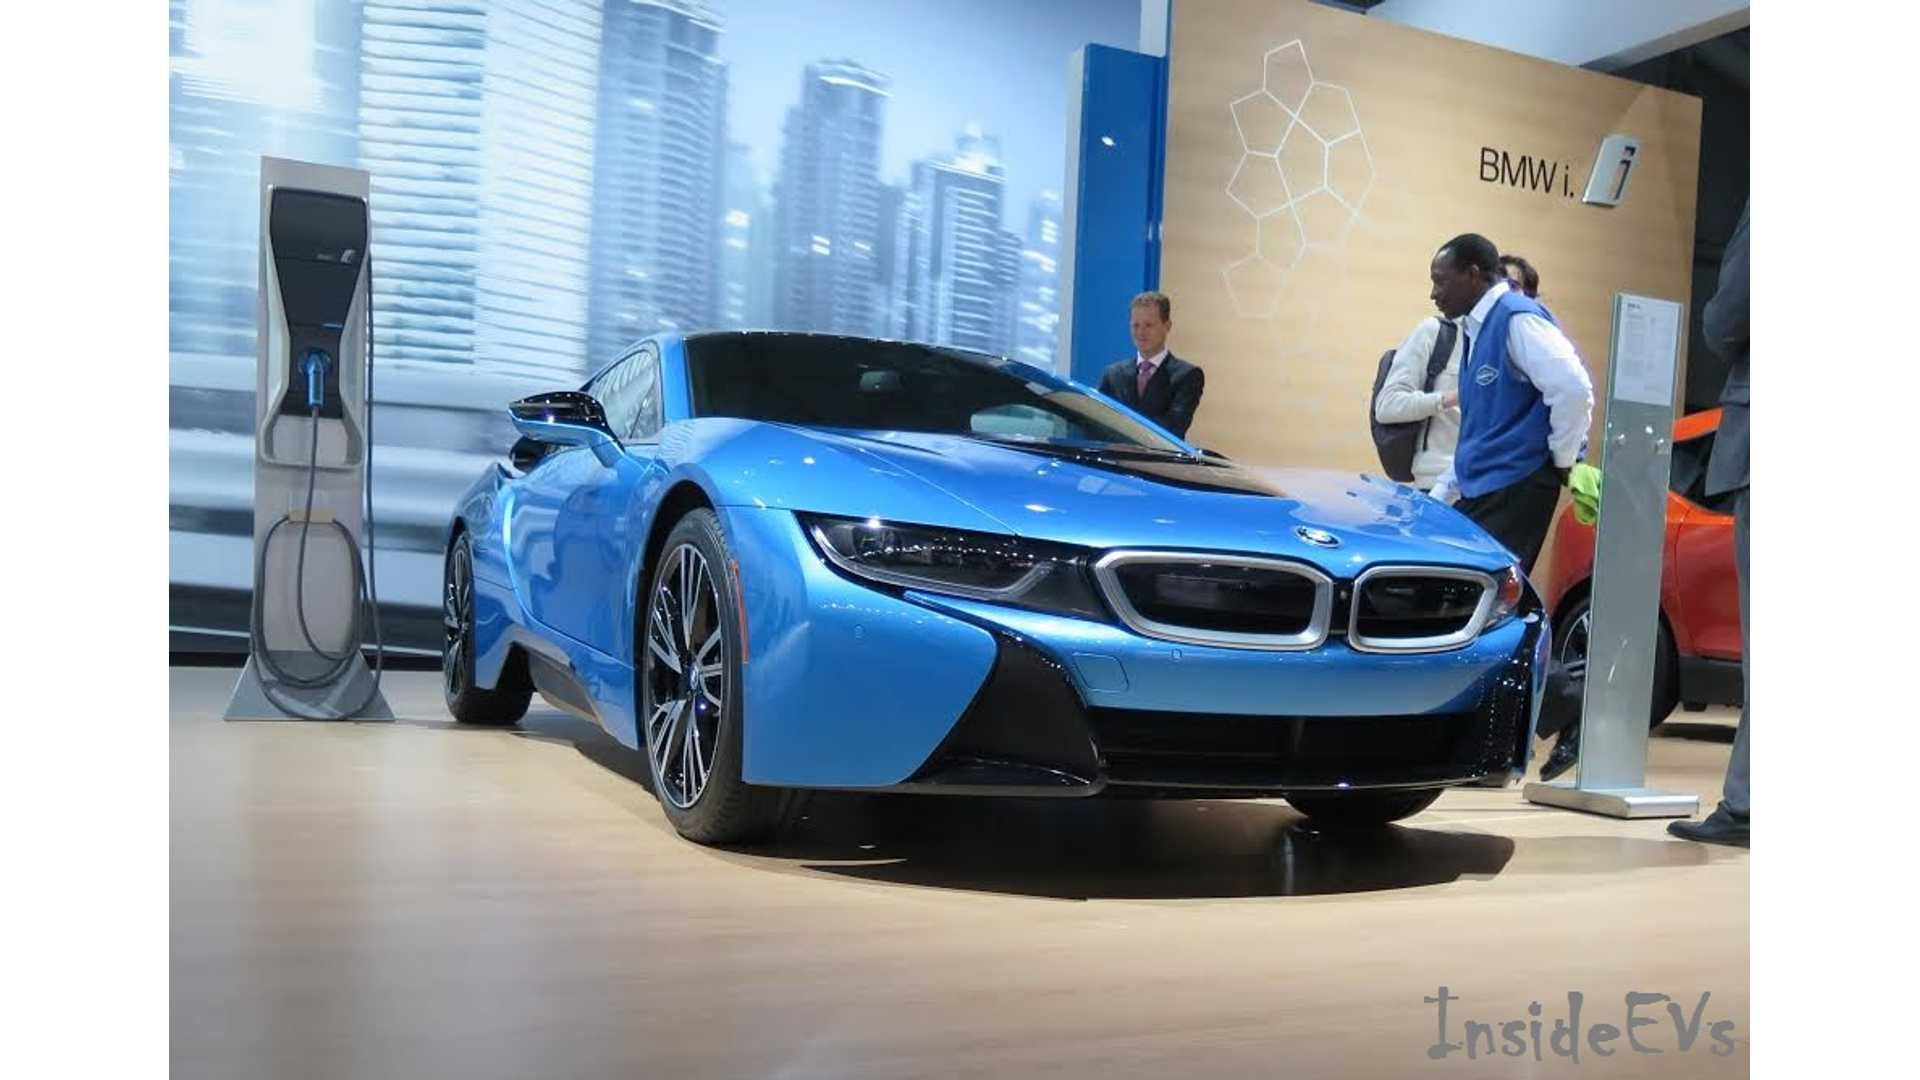 Bmw I8 Updated Specs 0 To 60 Mph In 4 2 Seconds